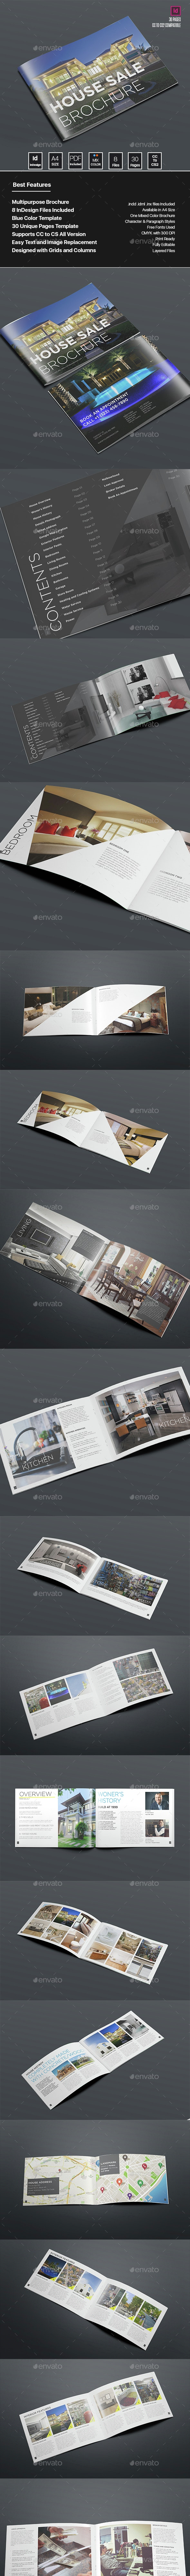 Real Estate and Property Sell Brochure - Brochures Print Templates